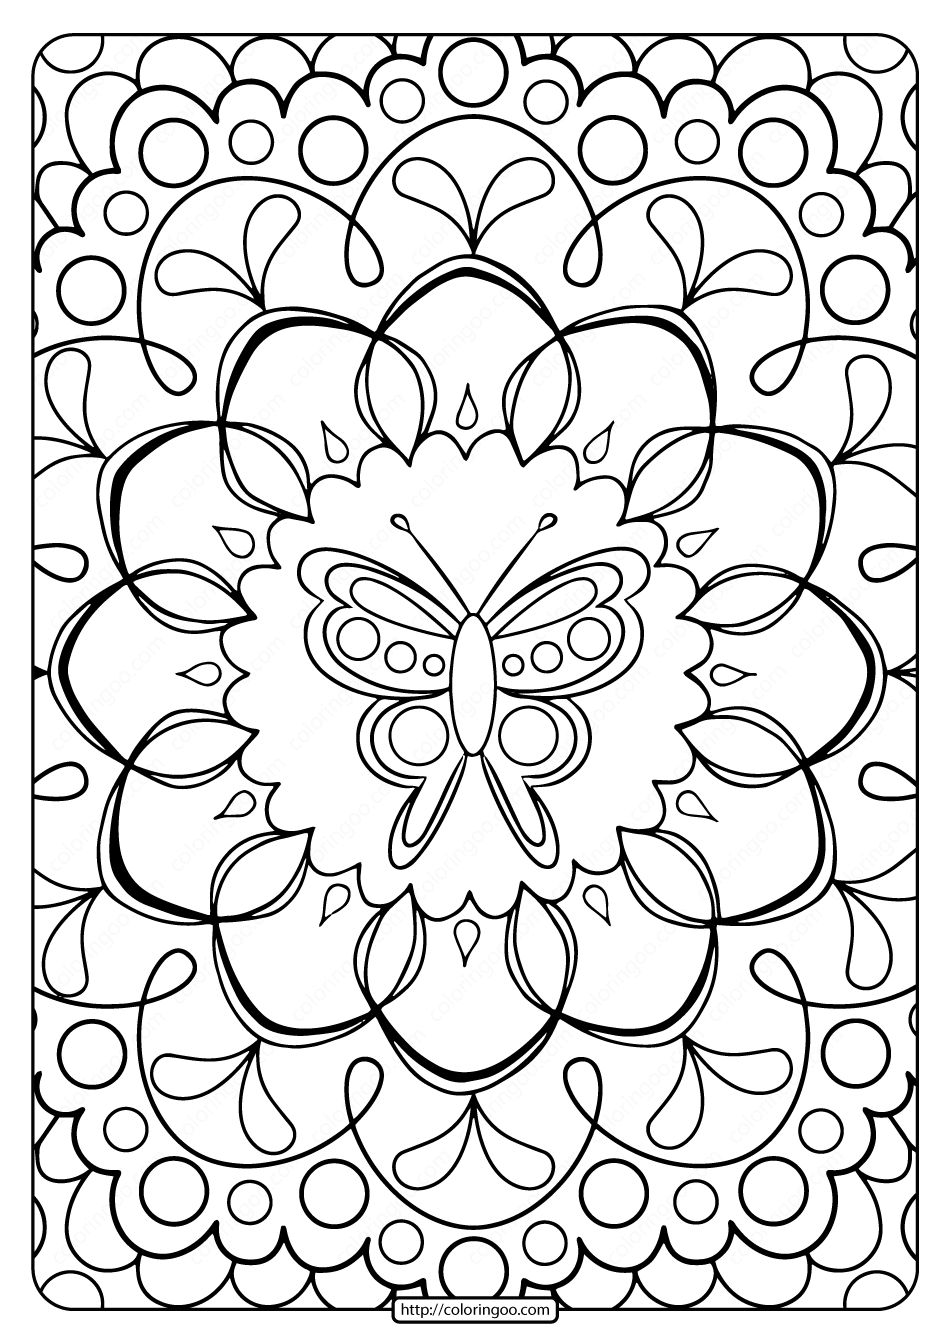 printable coloring book pages brave coloring pages best coloring pages for kids printable pages book coloring